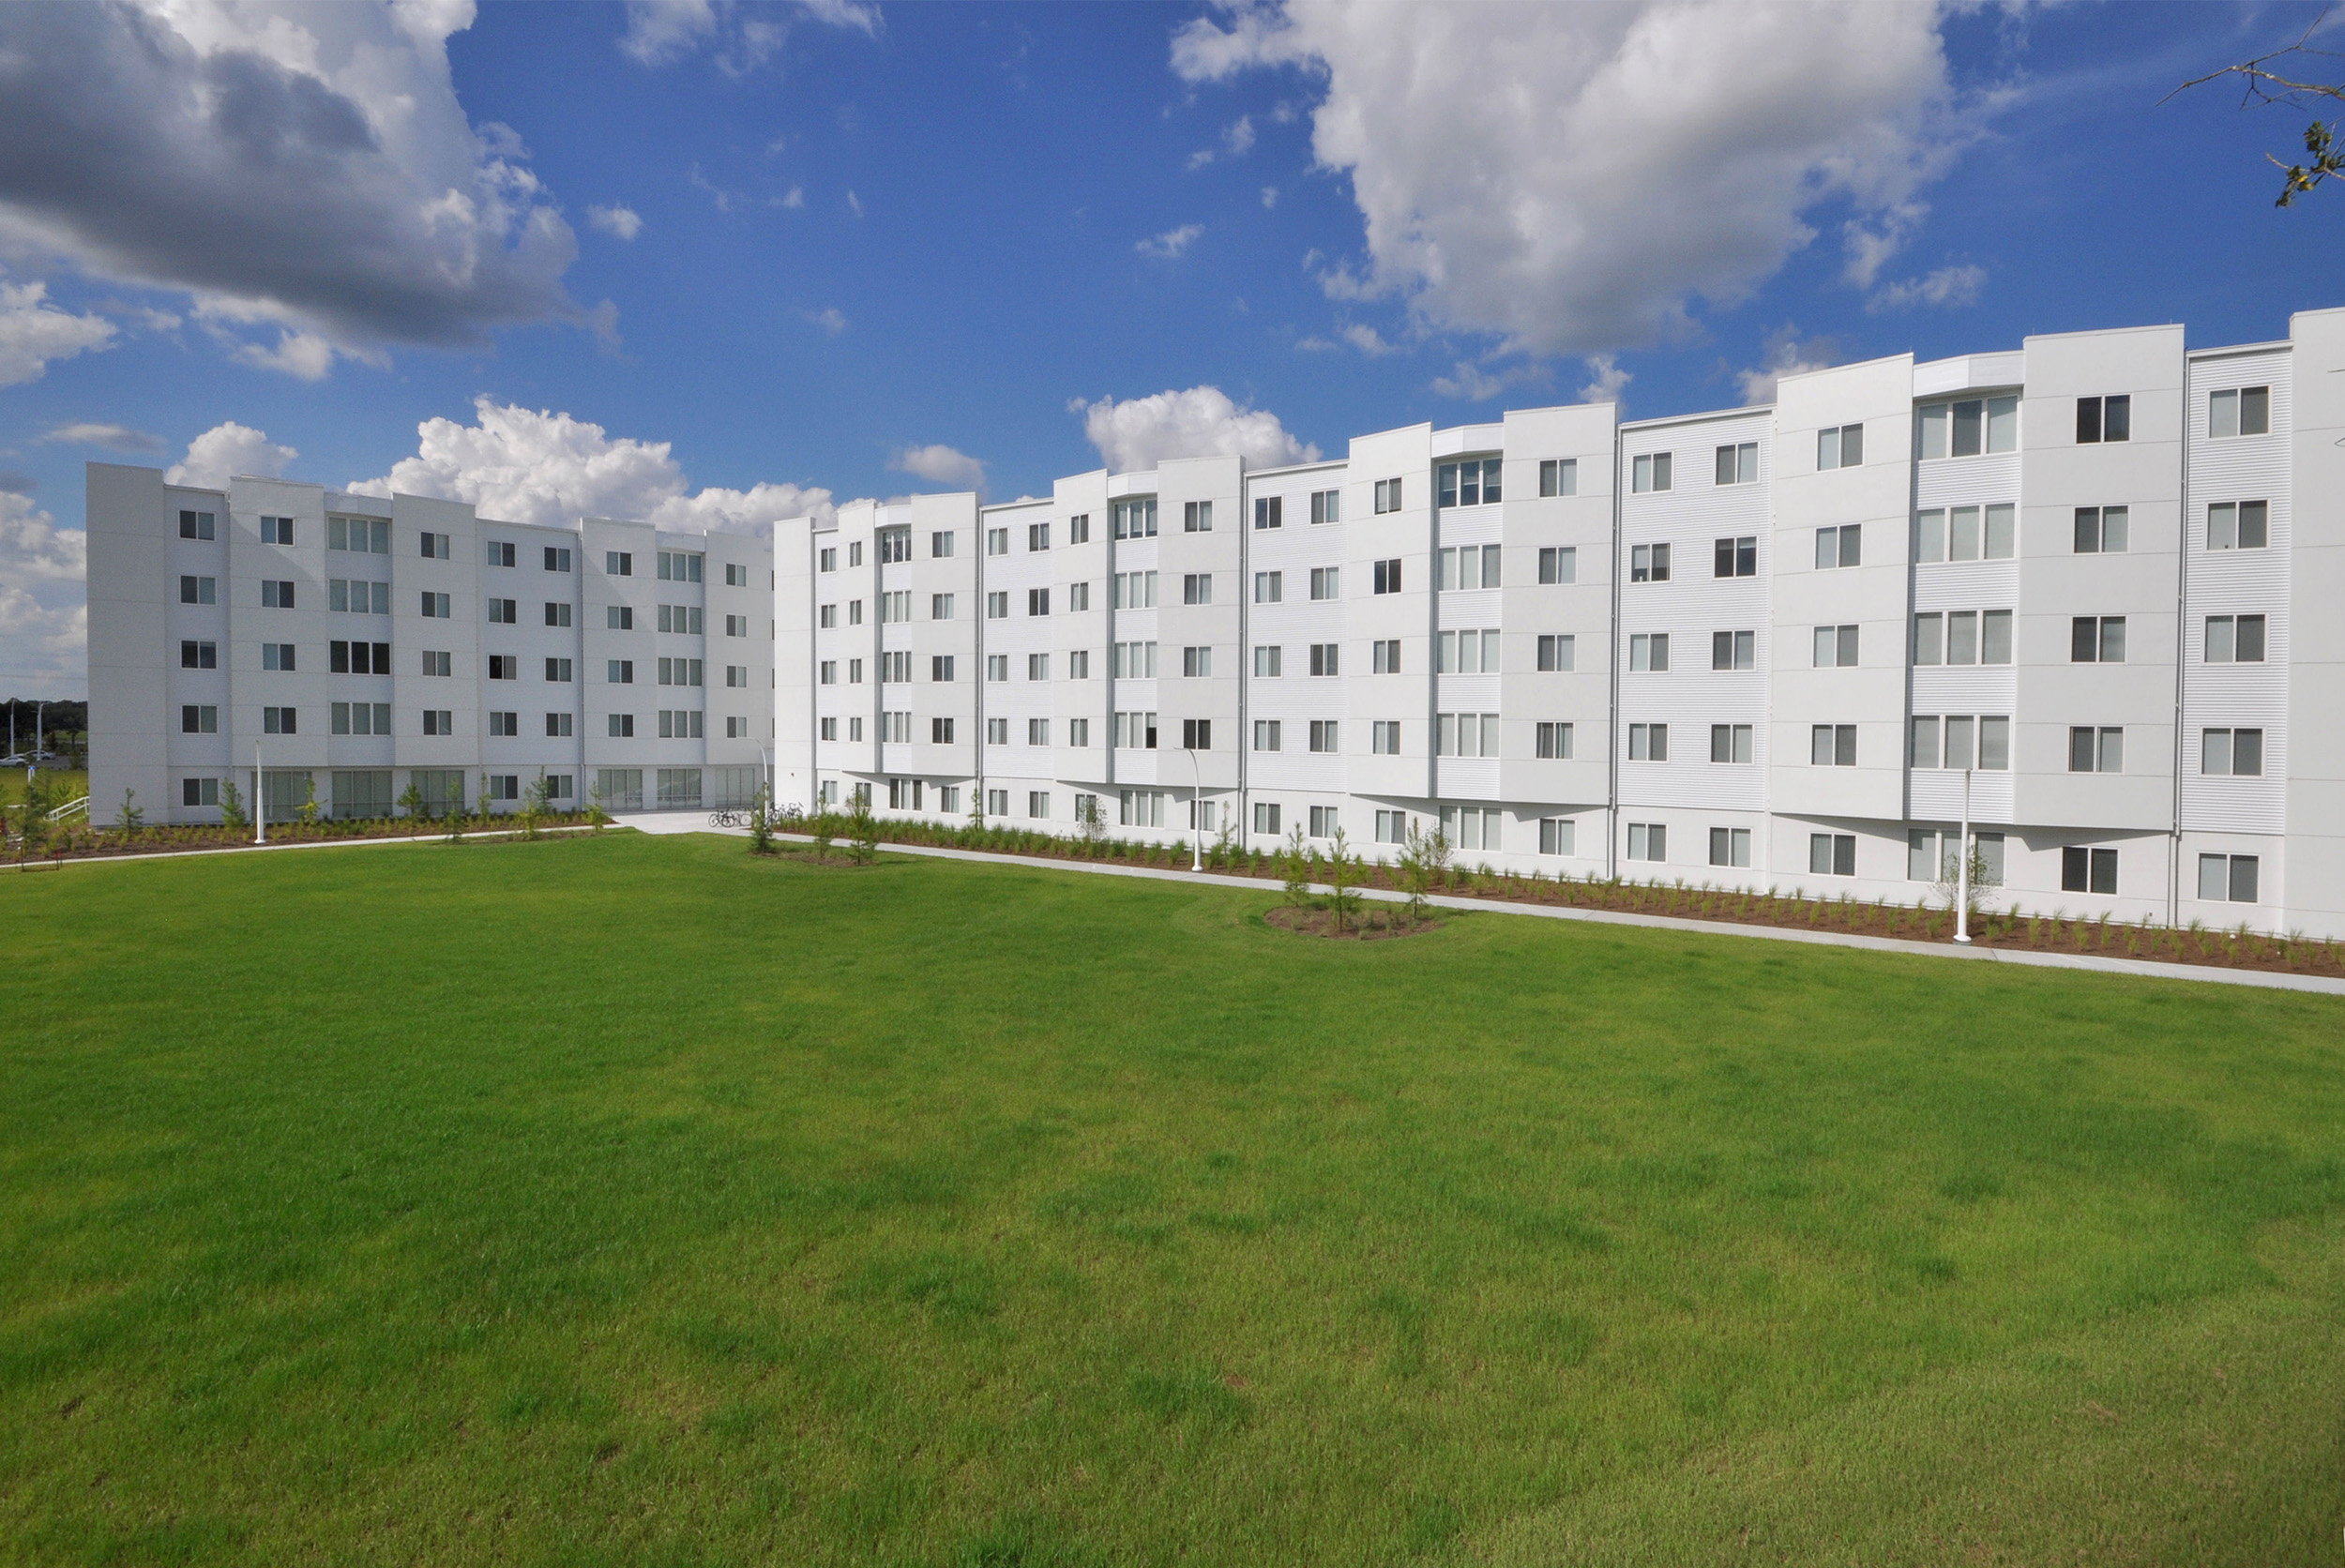 Student housing white multi story facility